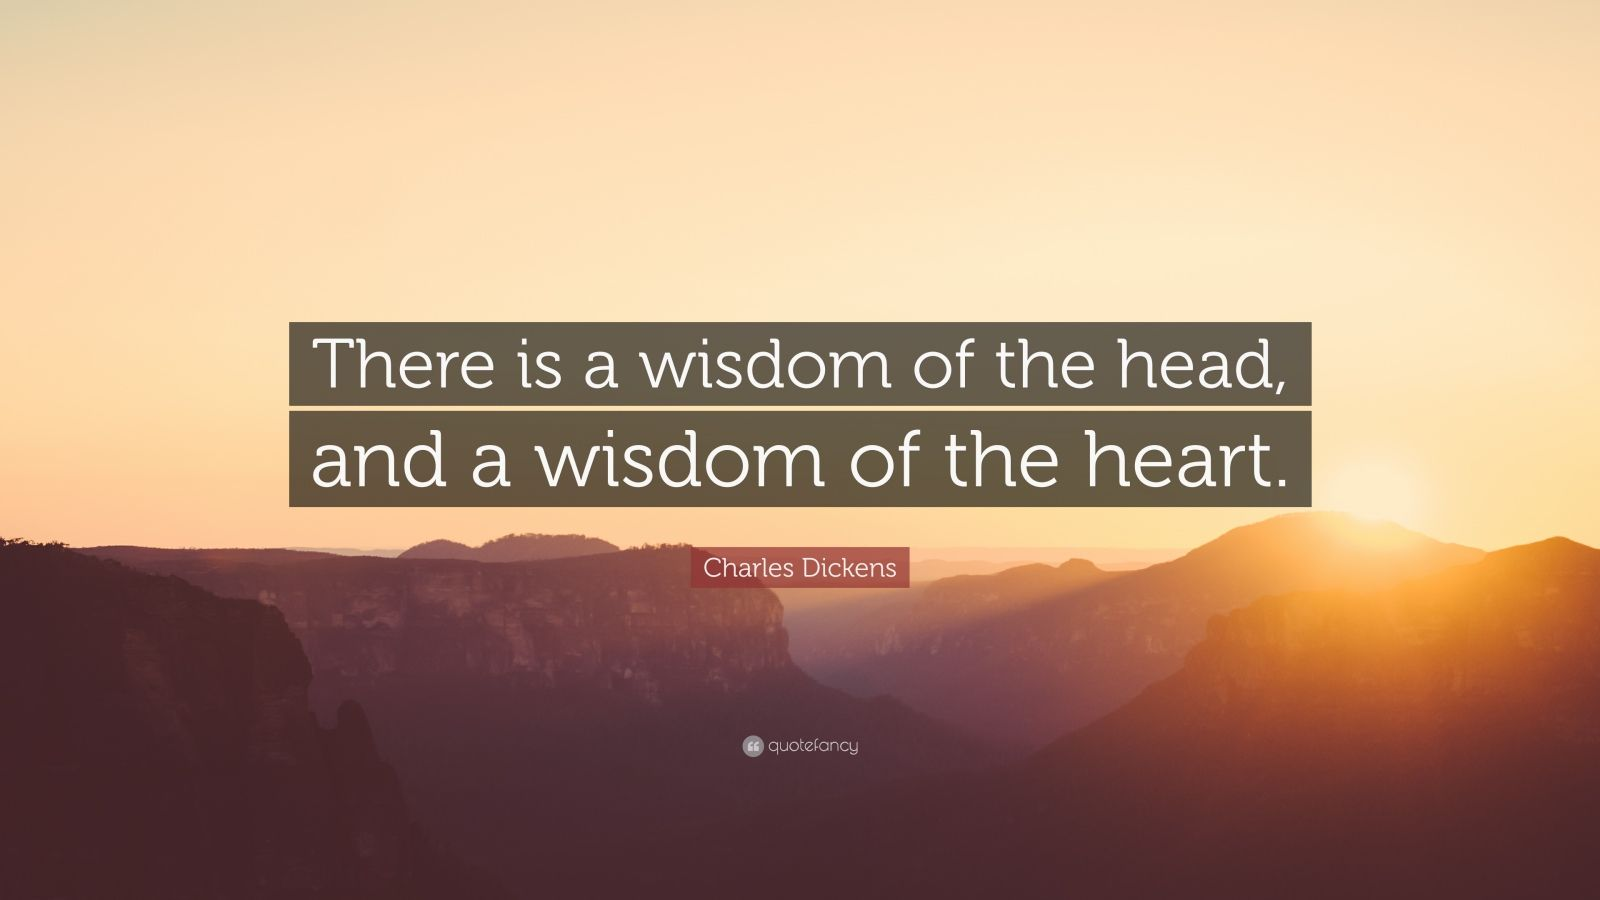 there is a wisdom of head and wisdom of the heart There is a wisdom of the head, and a wisdom of the heart.